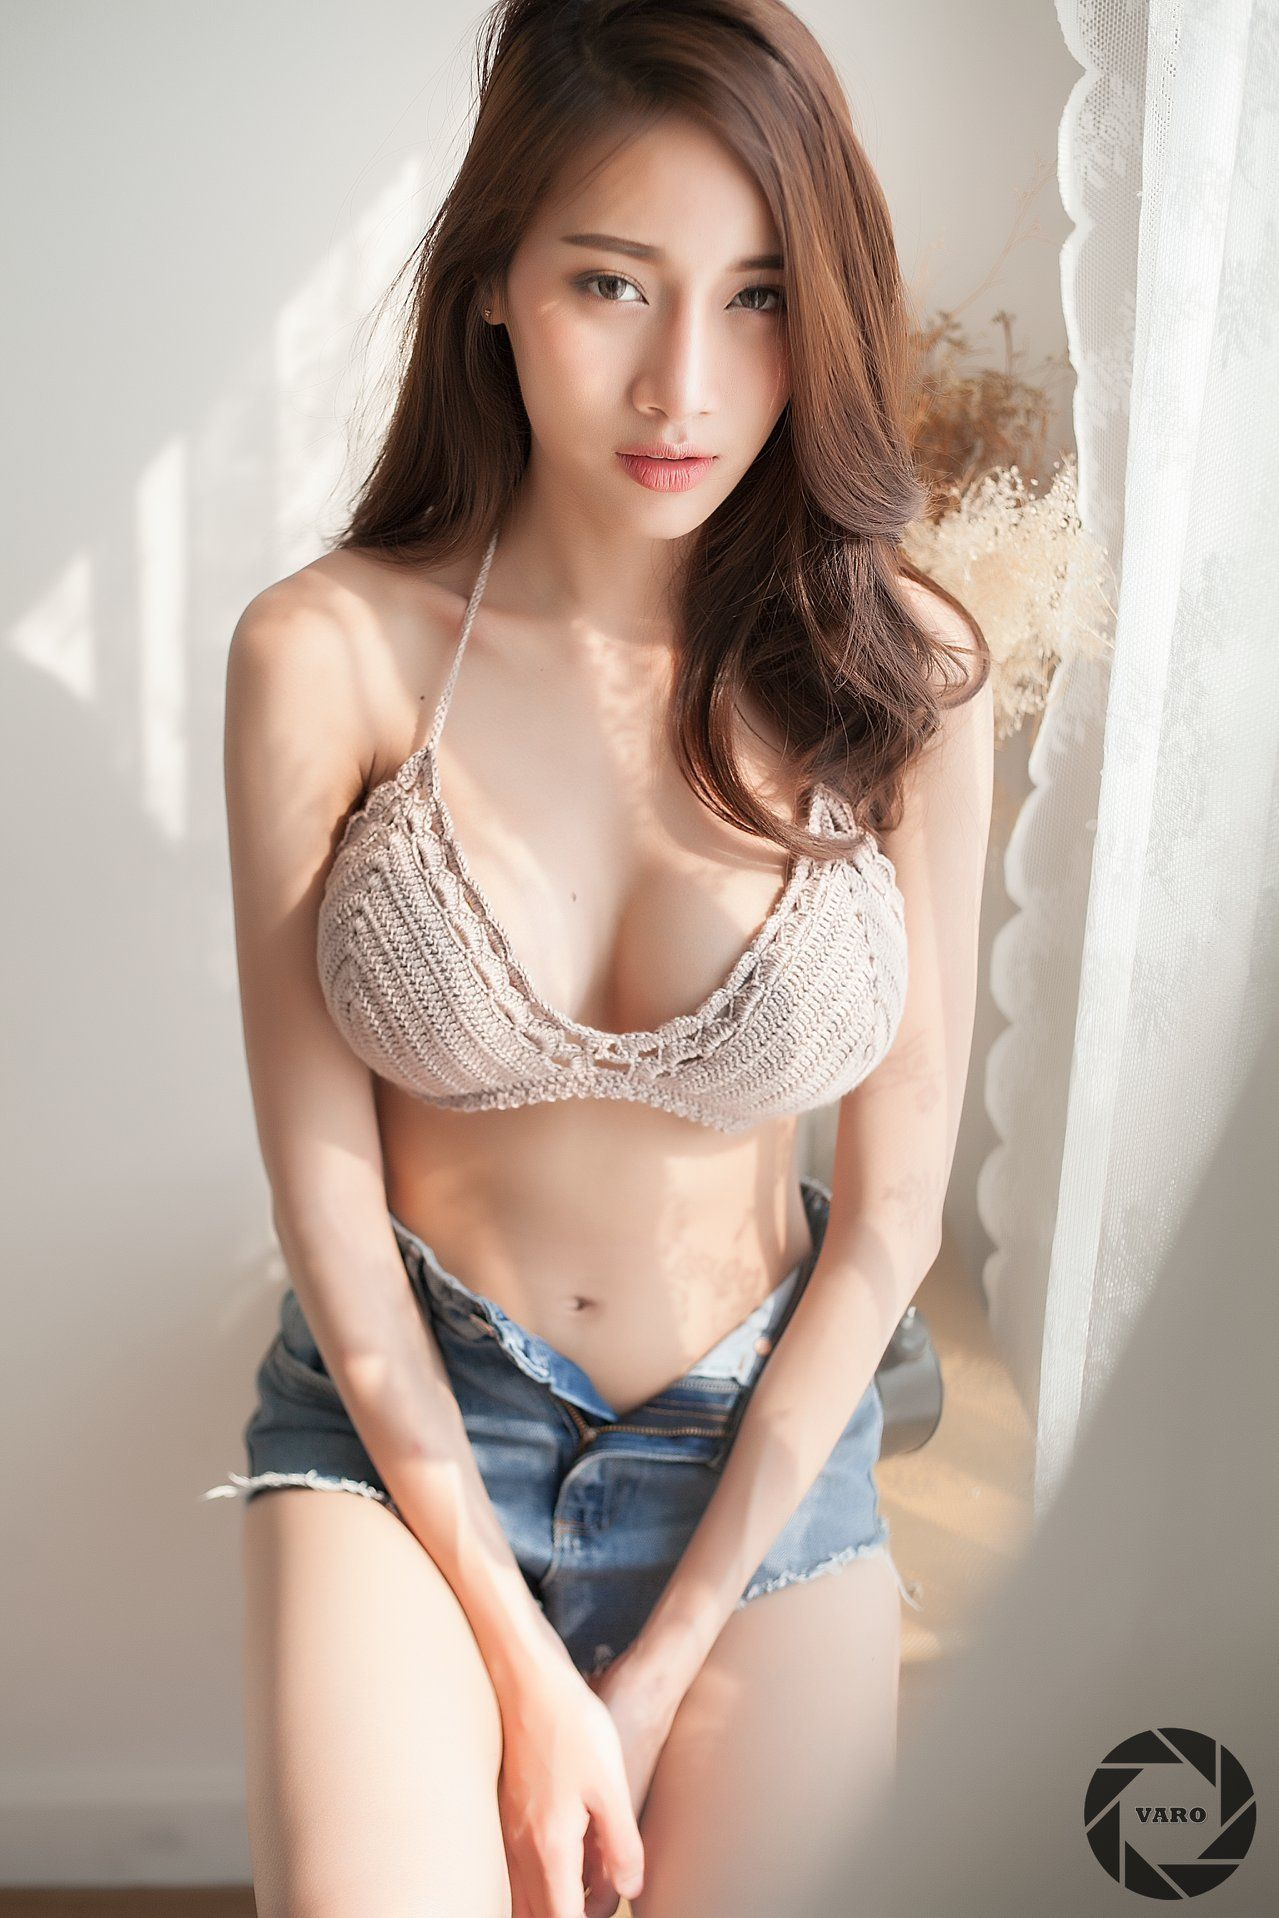 Petite asian girls nude